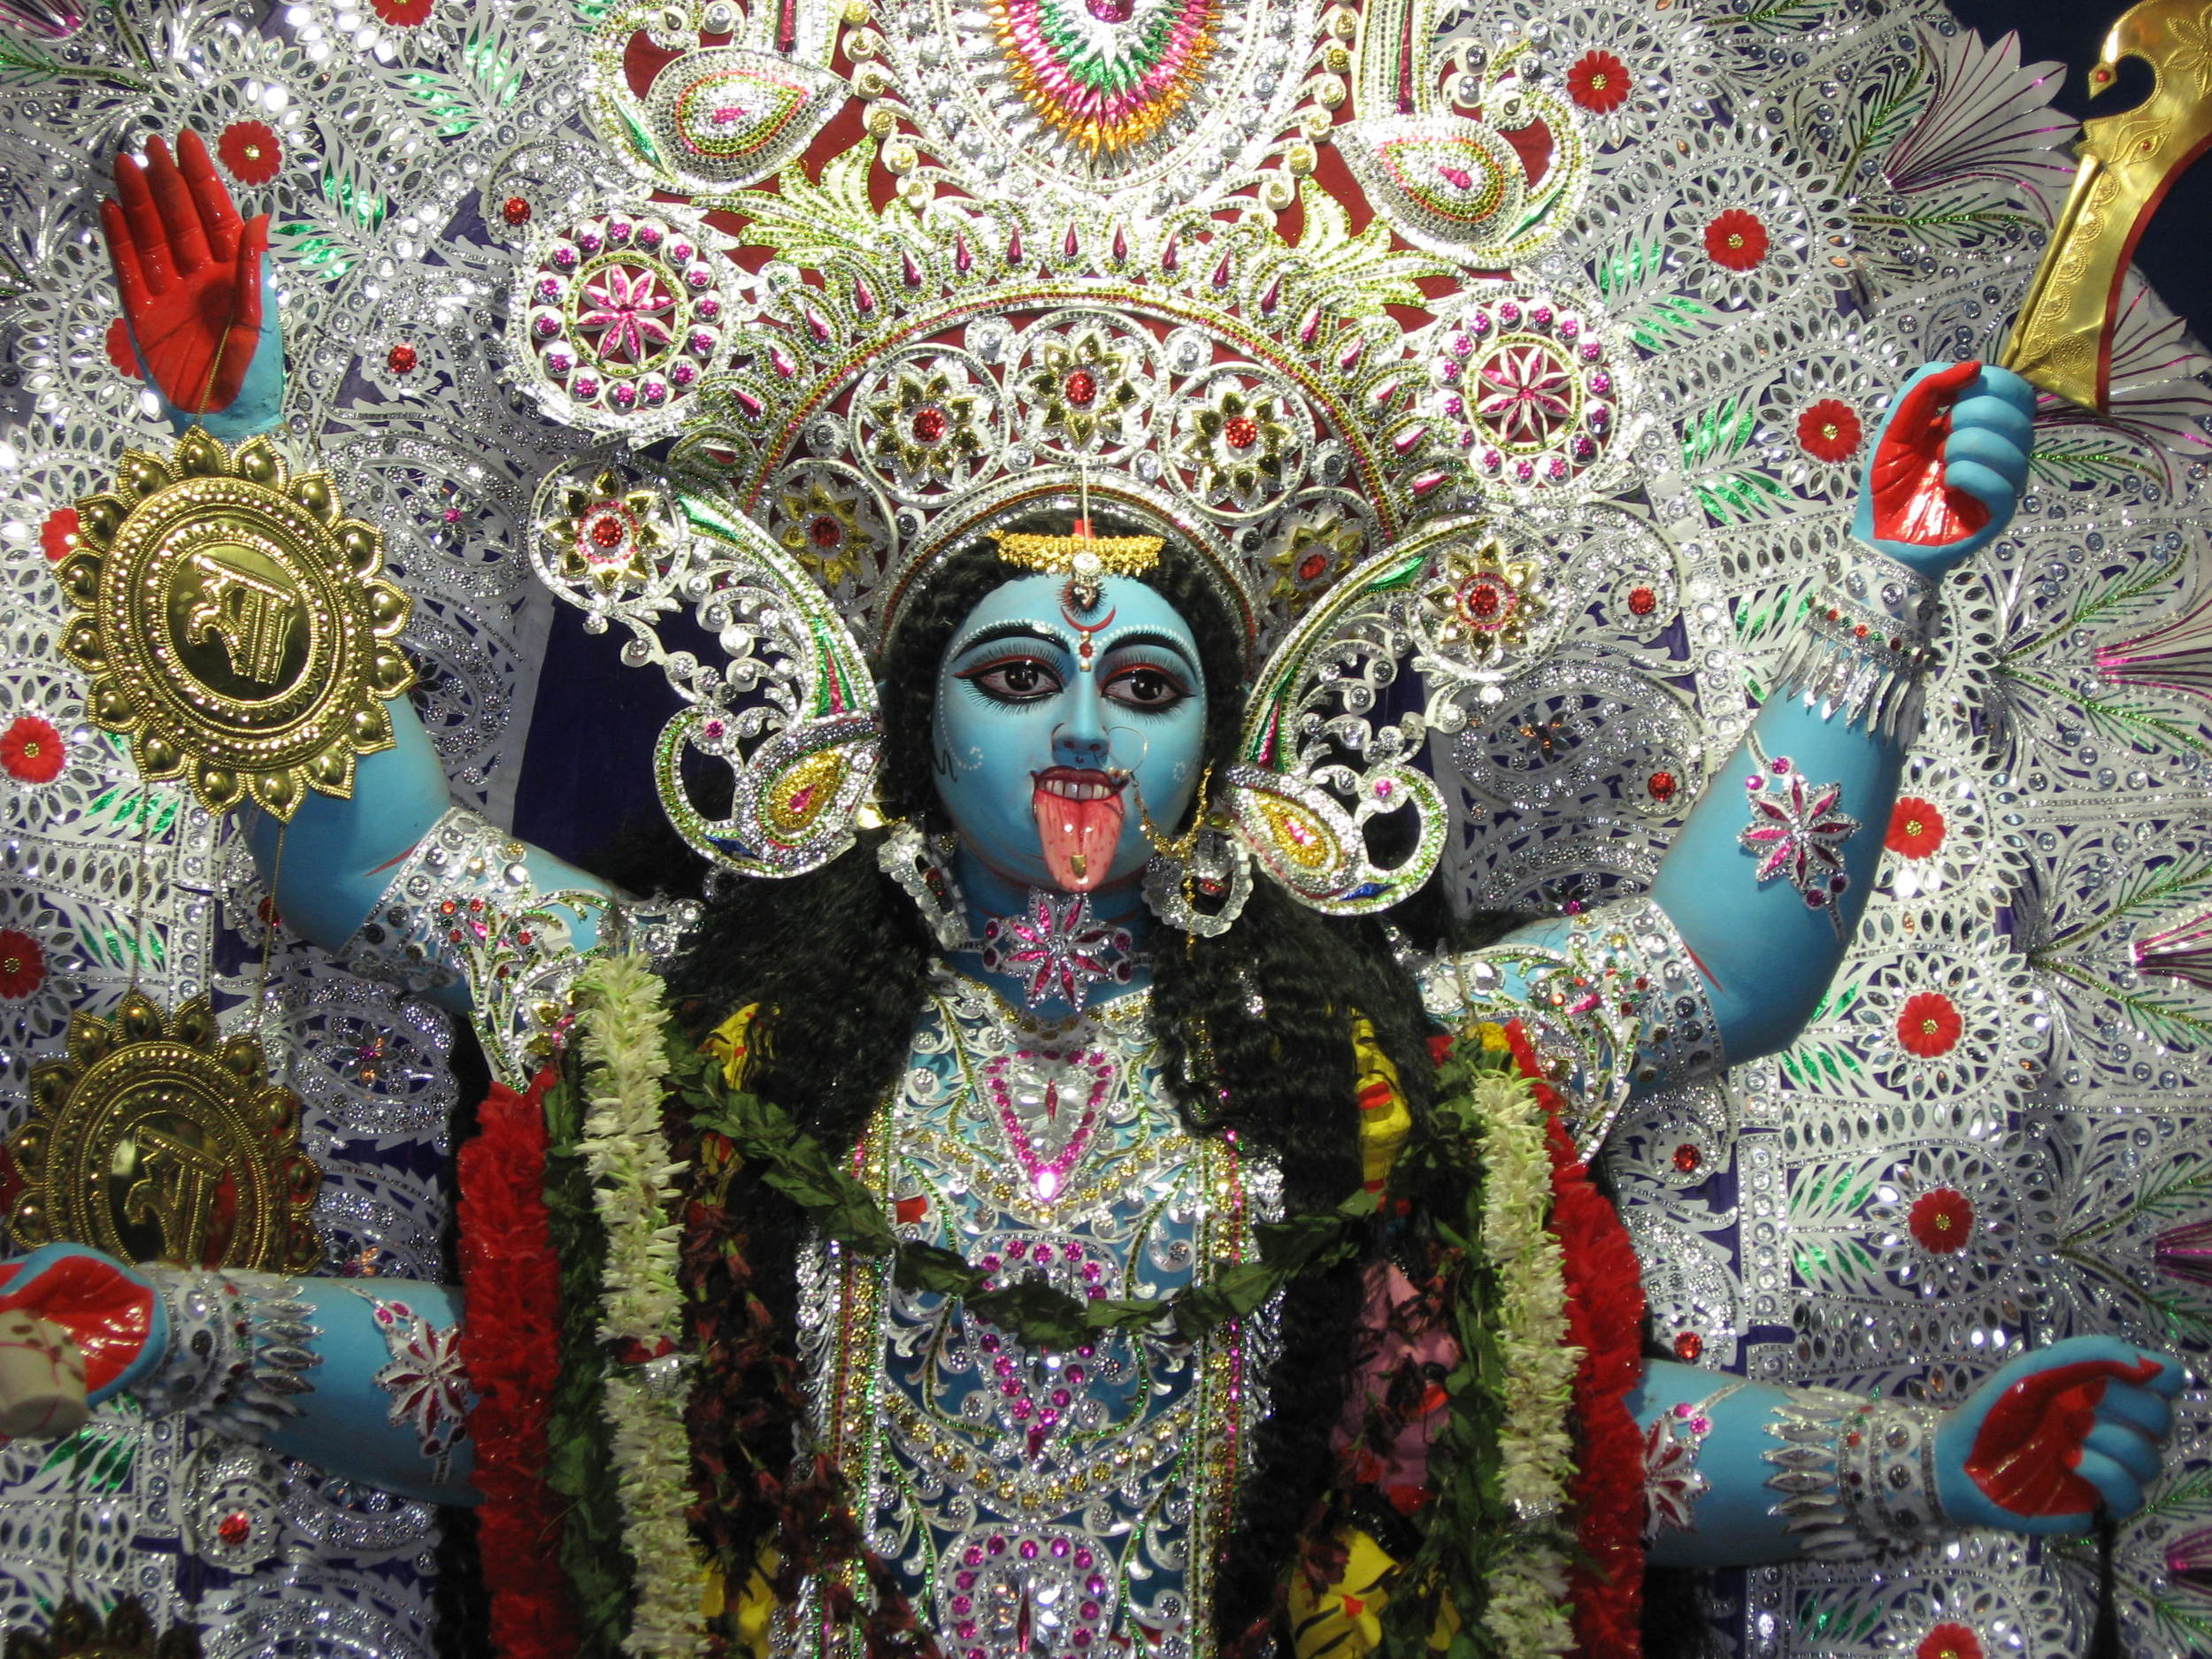 Kali the goddess -- Image by Piyal Kundu (Own work)  Wikimedia Commons